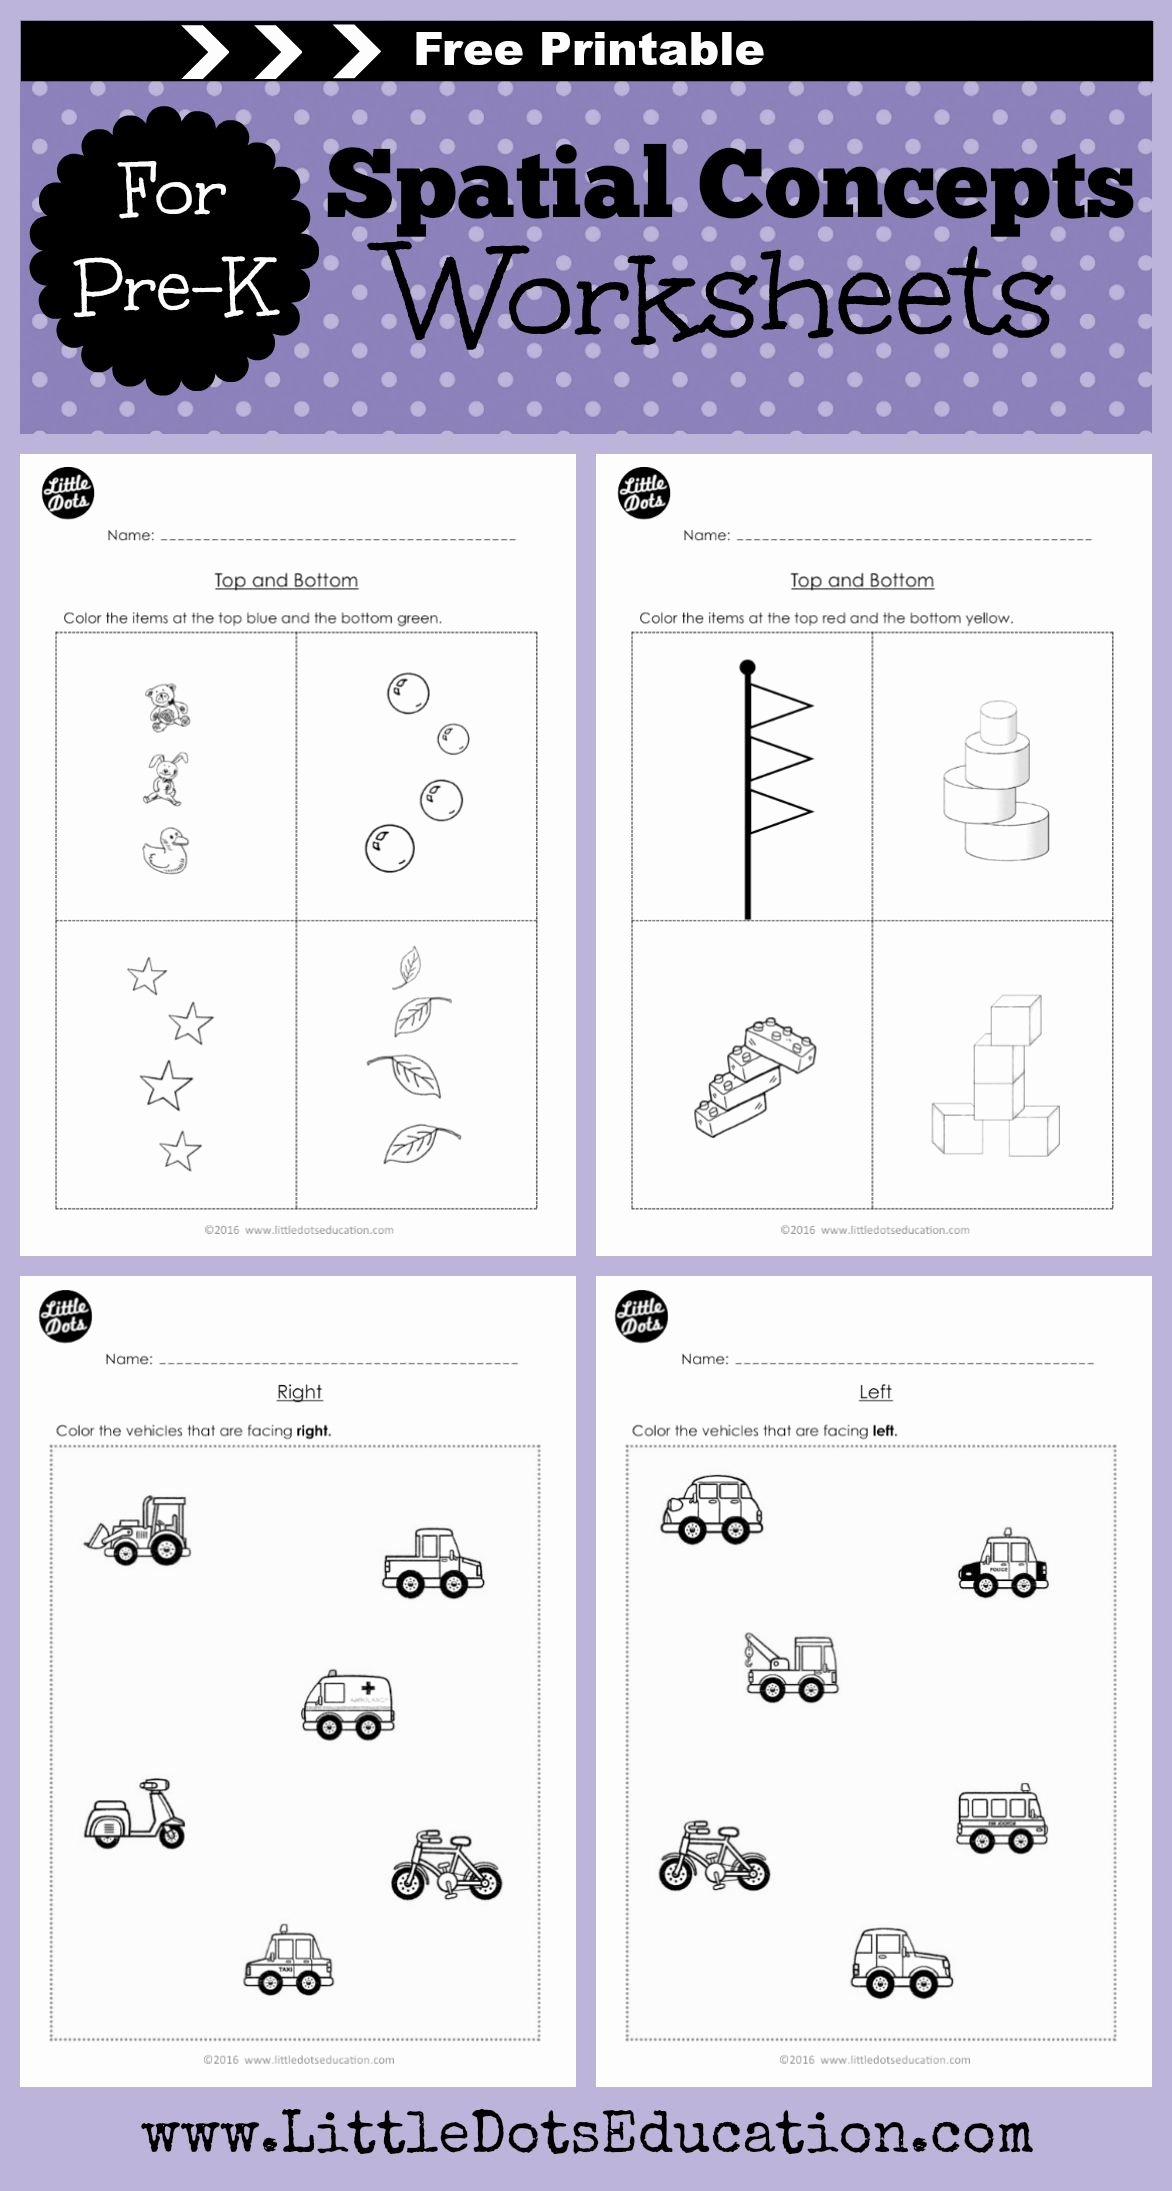 Math Concept Worksheets for Preschoolers Printable Pre K Spatial Concepts Worksheets and Activities